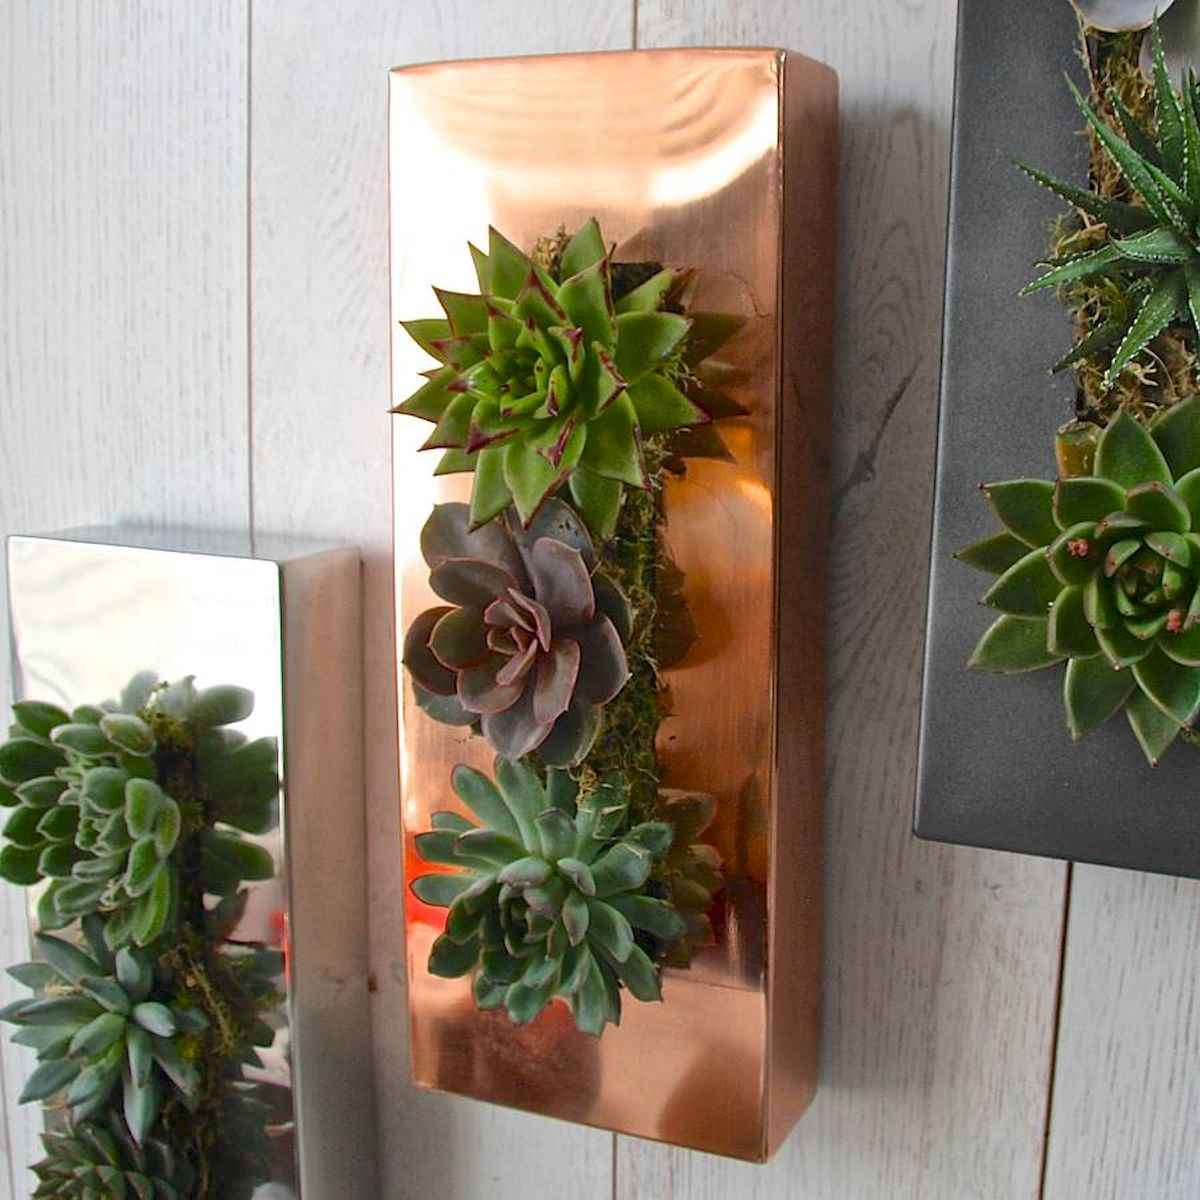 40 beautiful living wall planter garden ideas decorations and remodel (22)